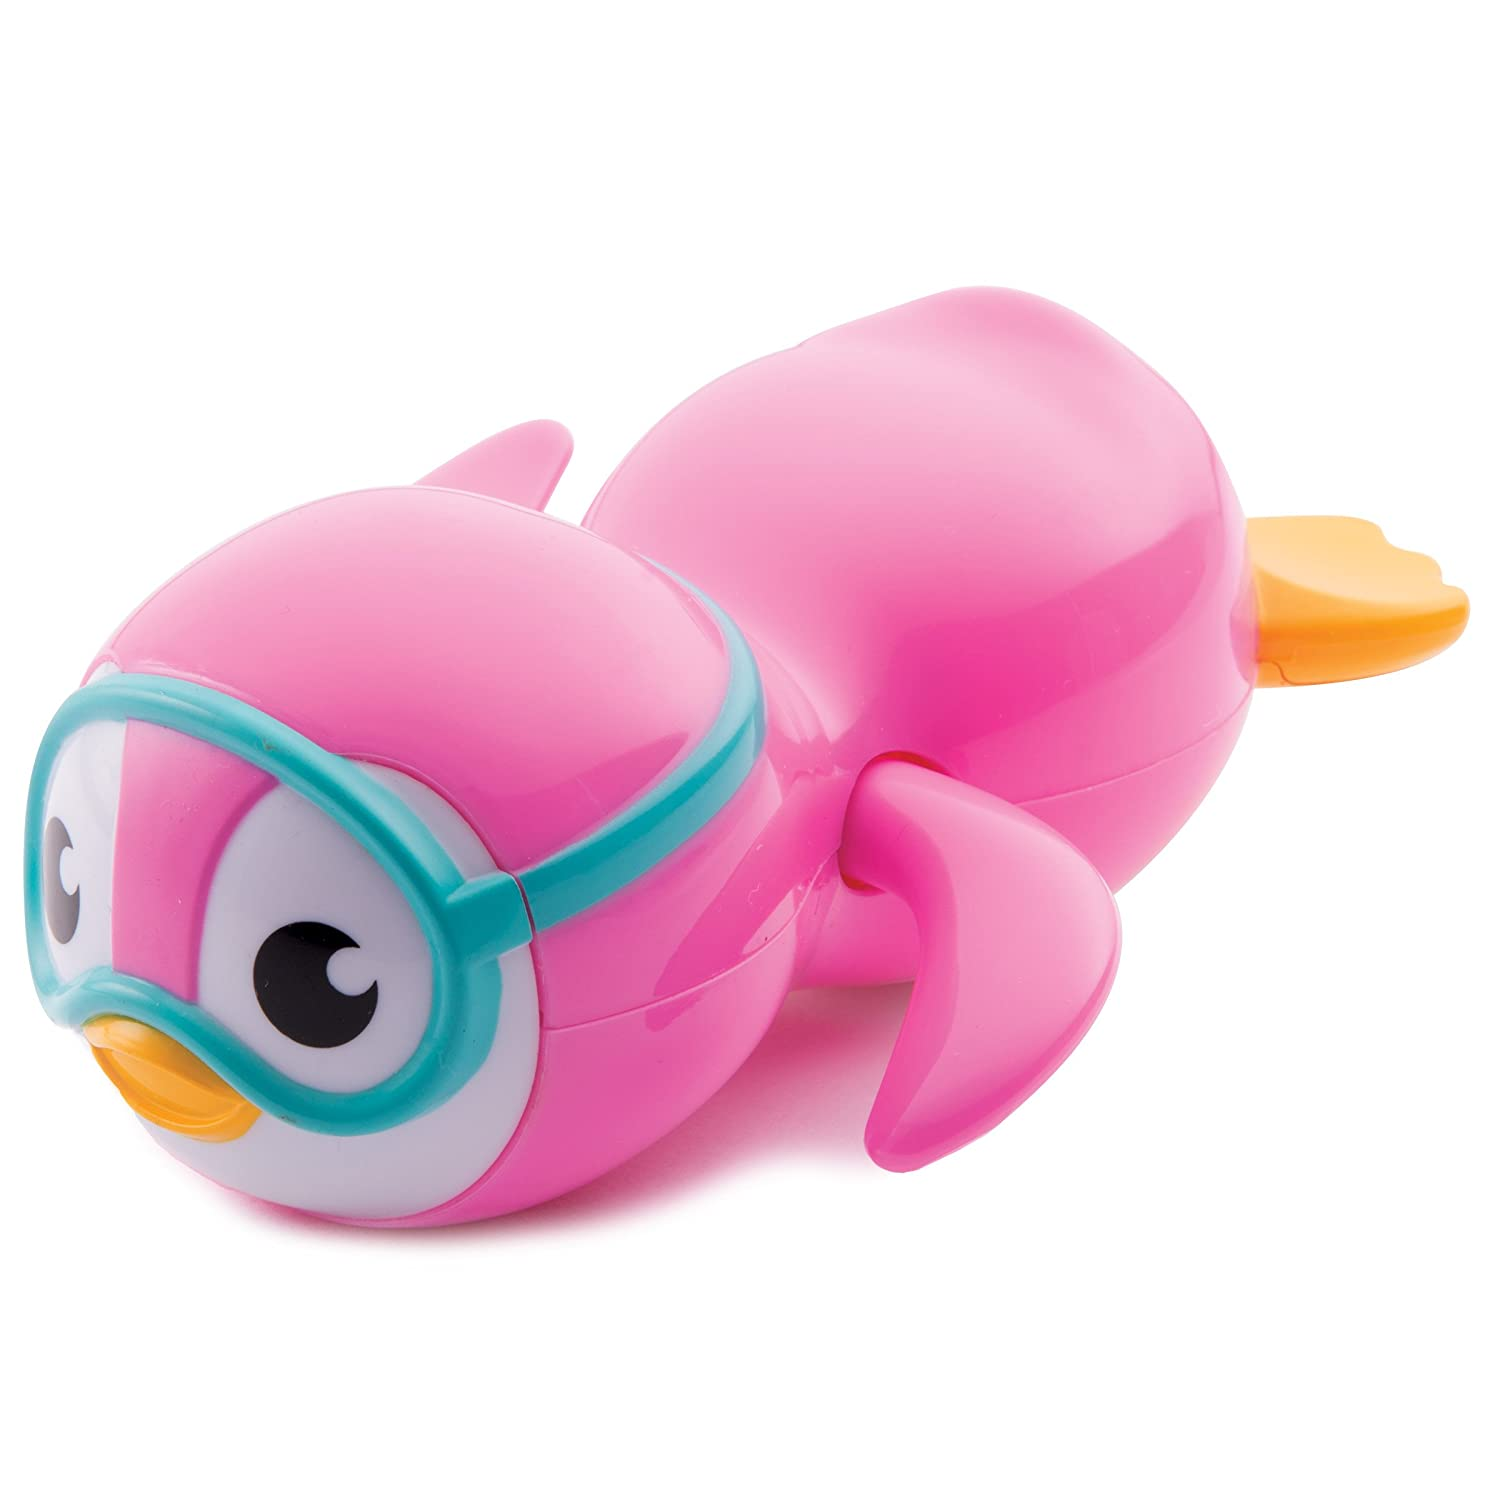 The Best Of Wind Up Bath toys Pictures